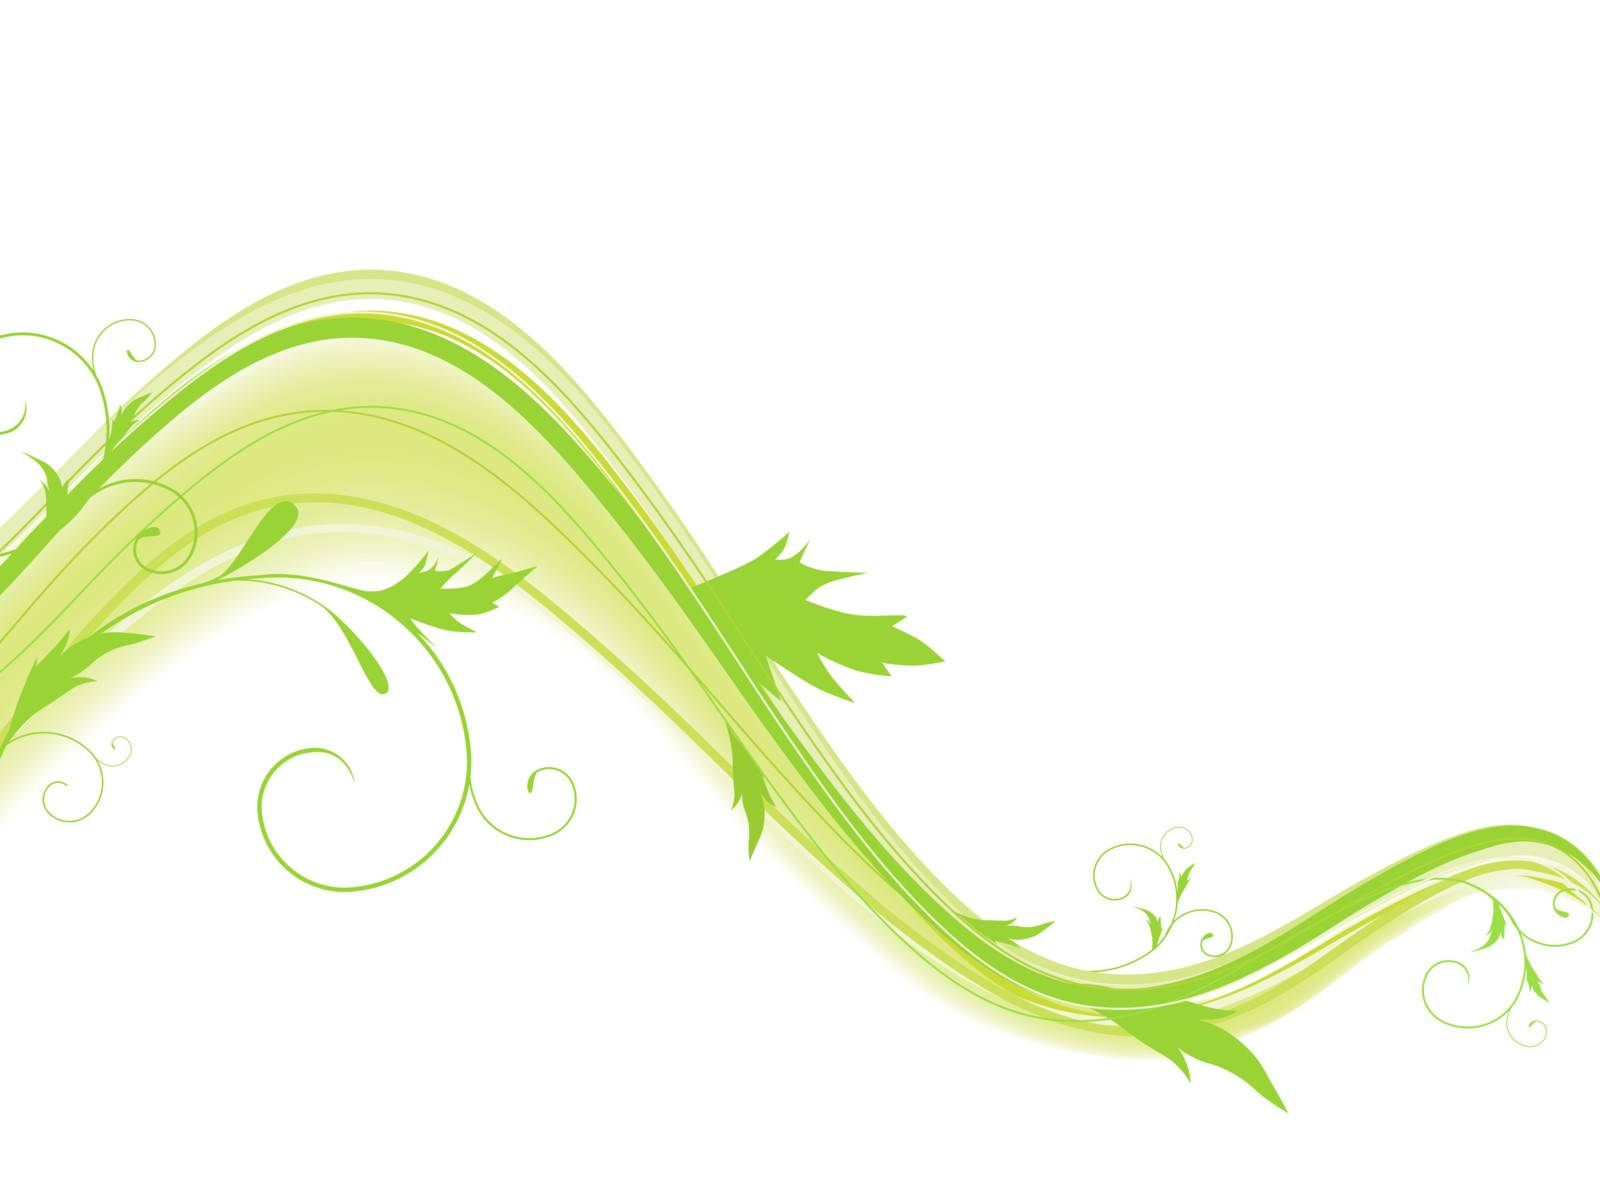 Abstract wave with foliage and swirls in green against white background